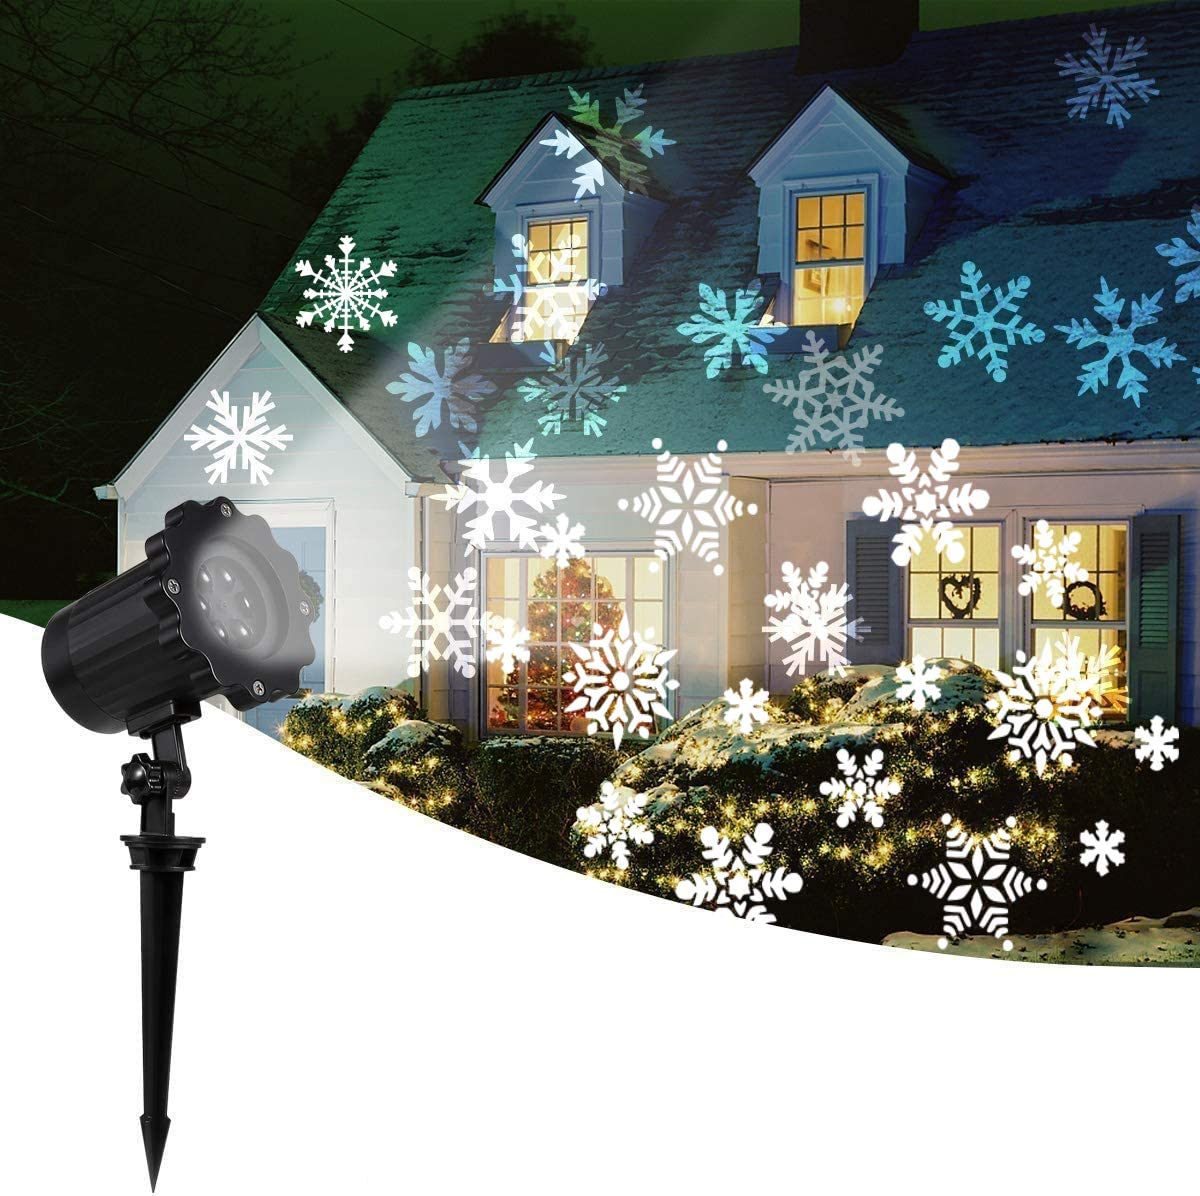 Amazon.com: 2020 New Moving Snowflake Lights, White Christmas